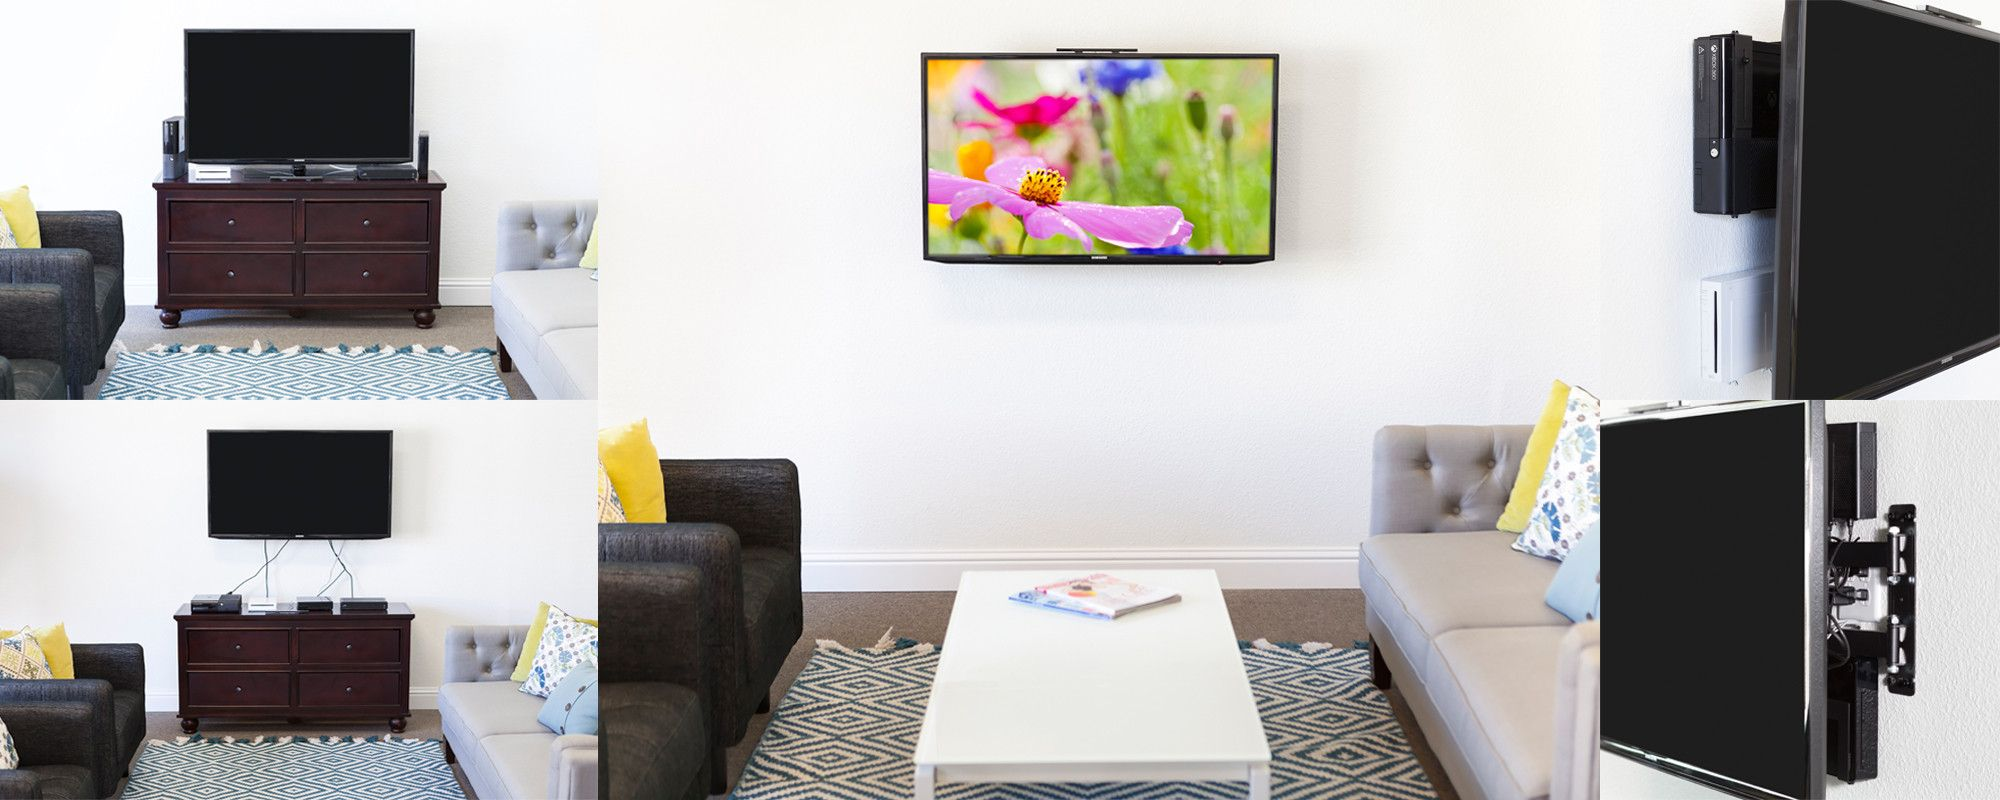 Modern Hiding Wires On A Wall Mounted Tv Ornament - Schematic ...